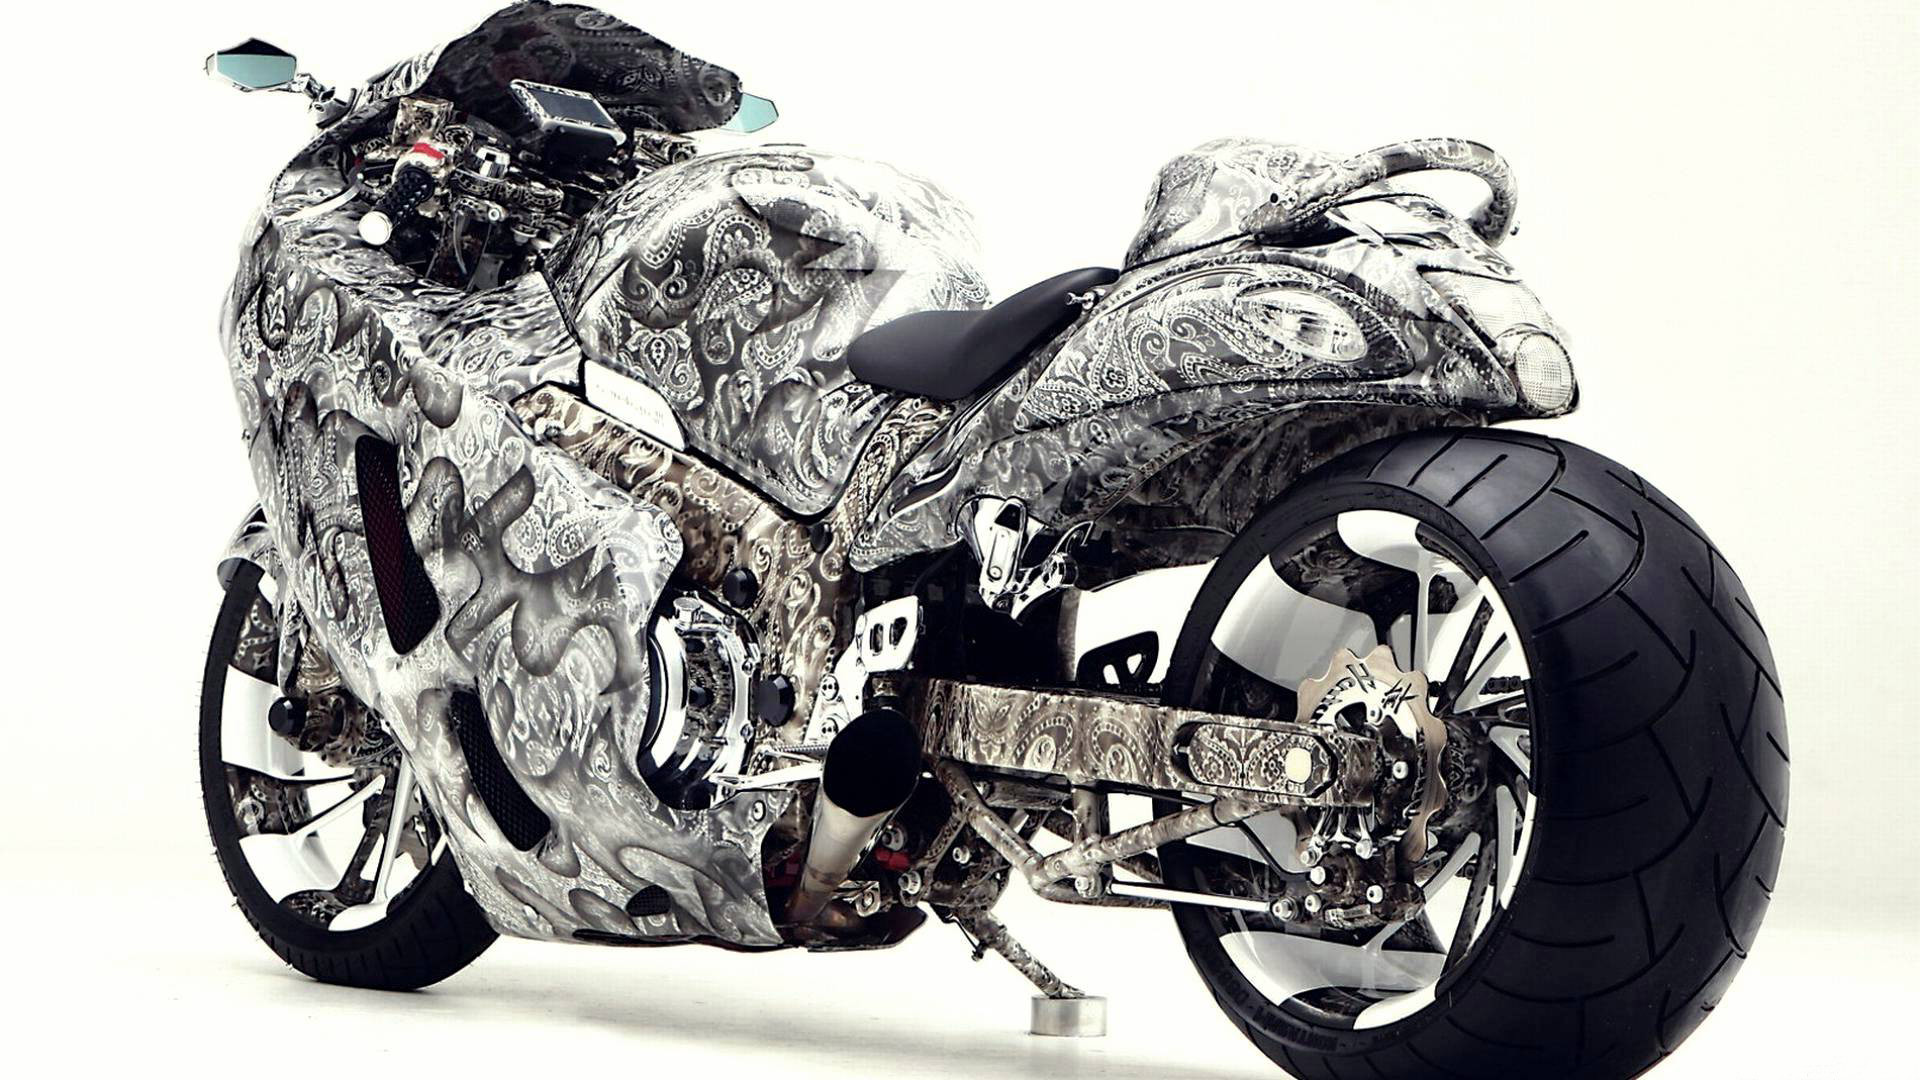 Sport Bike Black And Red Wallpaper: Sports Bikes Wallpapers (72+ Images